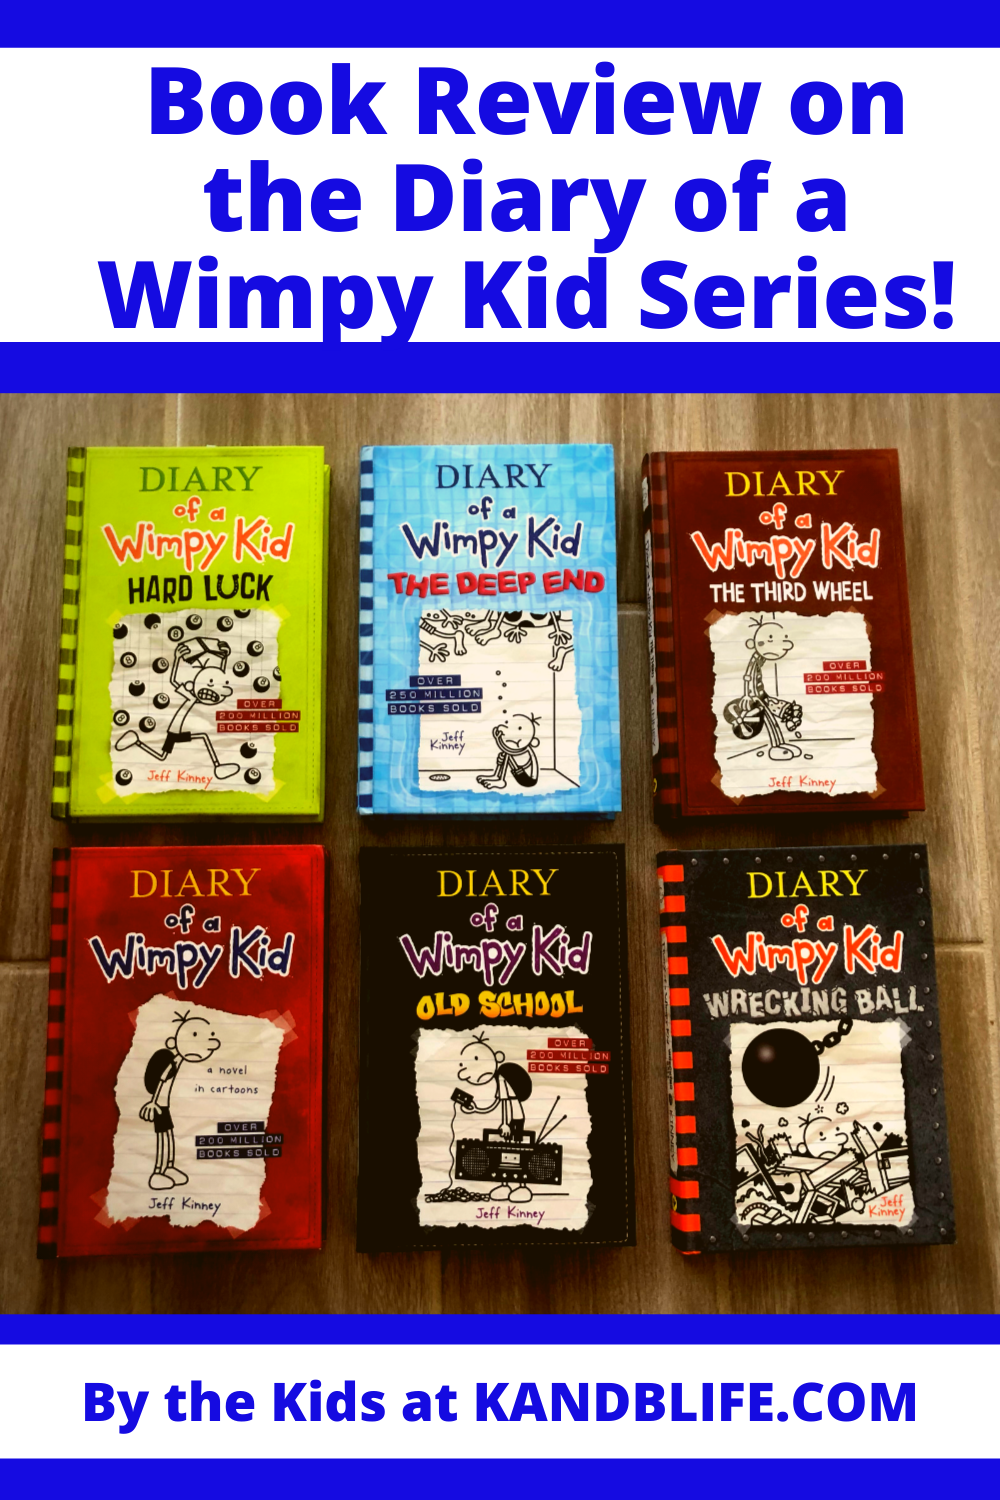 Book Review on Diary of a Wimpy Kid Series